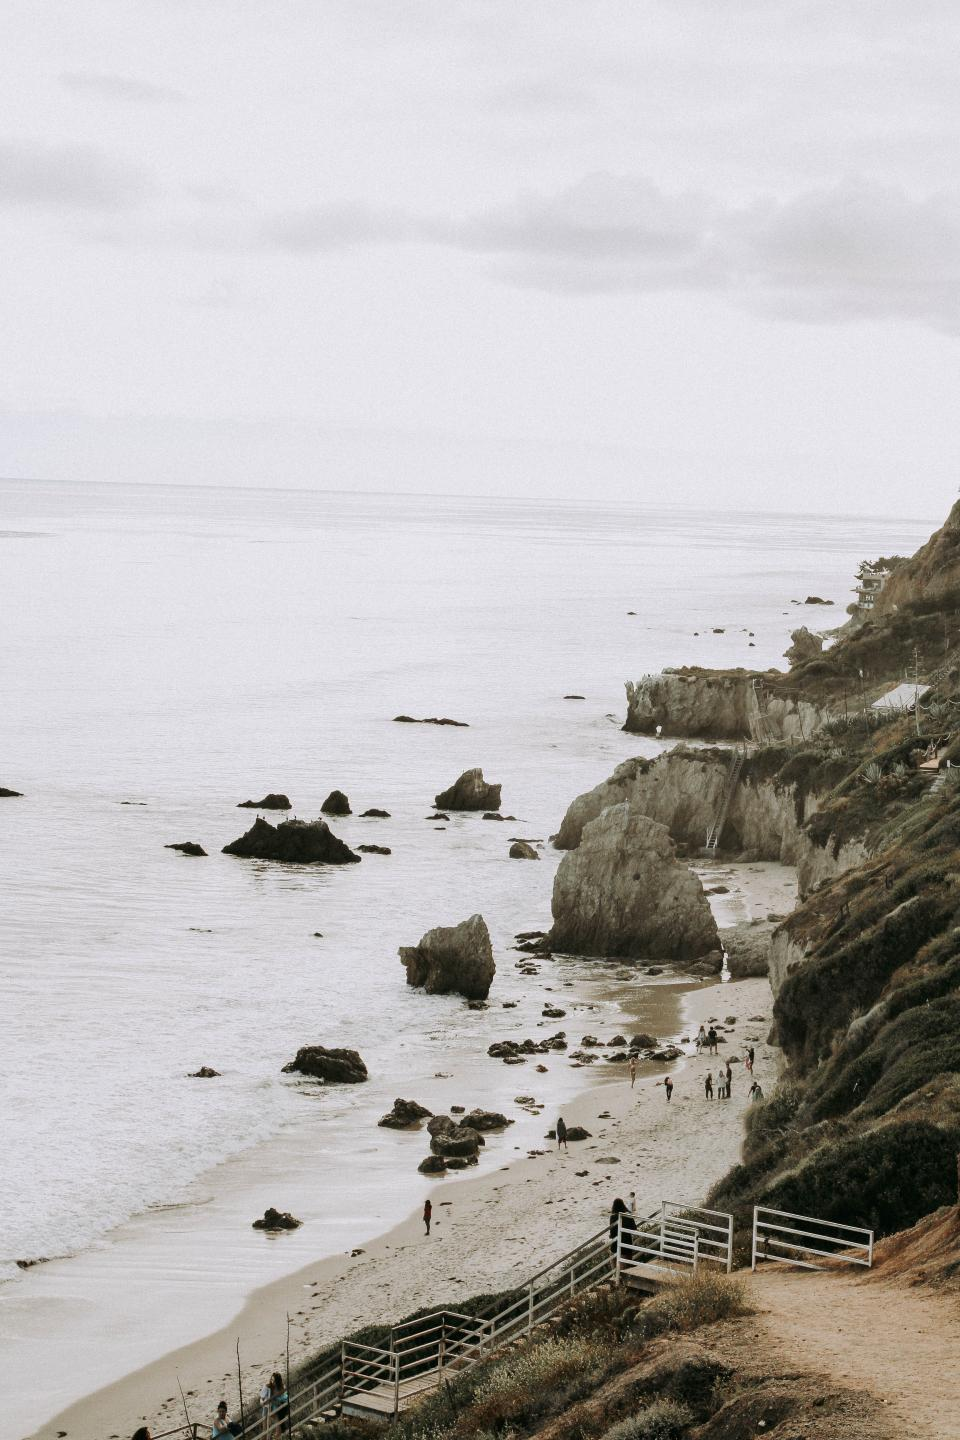 sea, ocean, water, waves, nature, beach, coast, sand, shore, people, crowd, family, friends, outdoor, summer, vacation, travel, grass, hill, highland, landscape, rocks, stairs, cliff